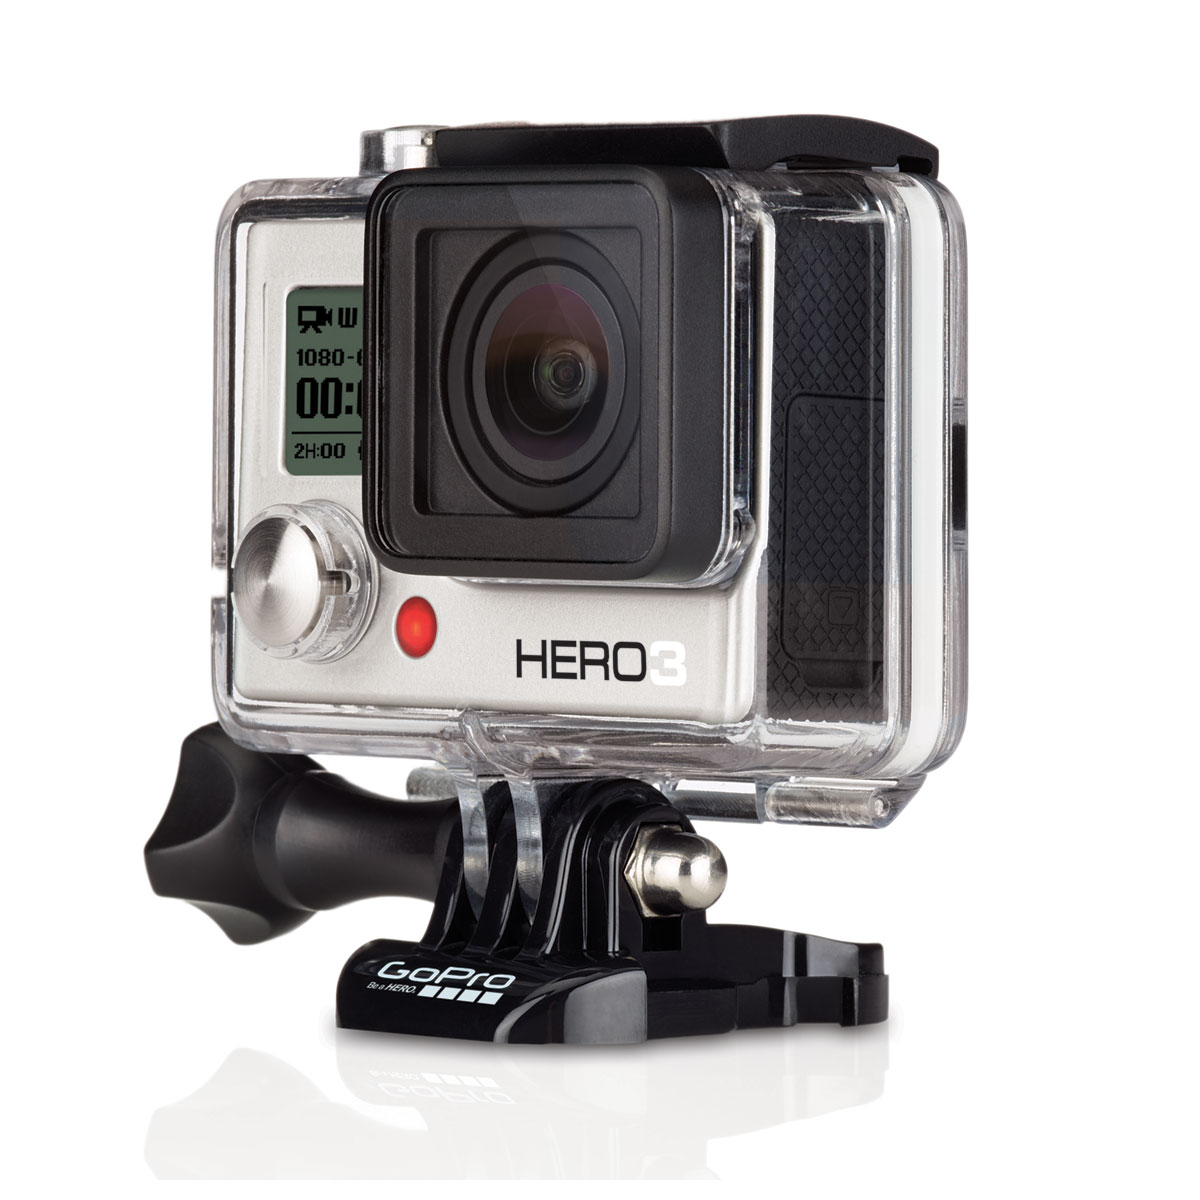 gopro hero 3 white edition 2014 bo tier slim cawh3s achat vente cam ra sportive sur. Black Bedroom Furniture Sets. Home Design Ideas